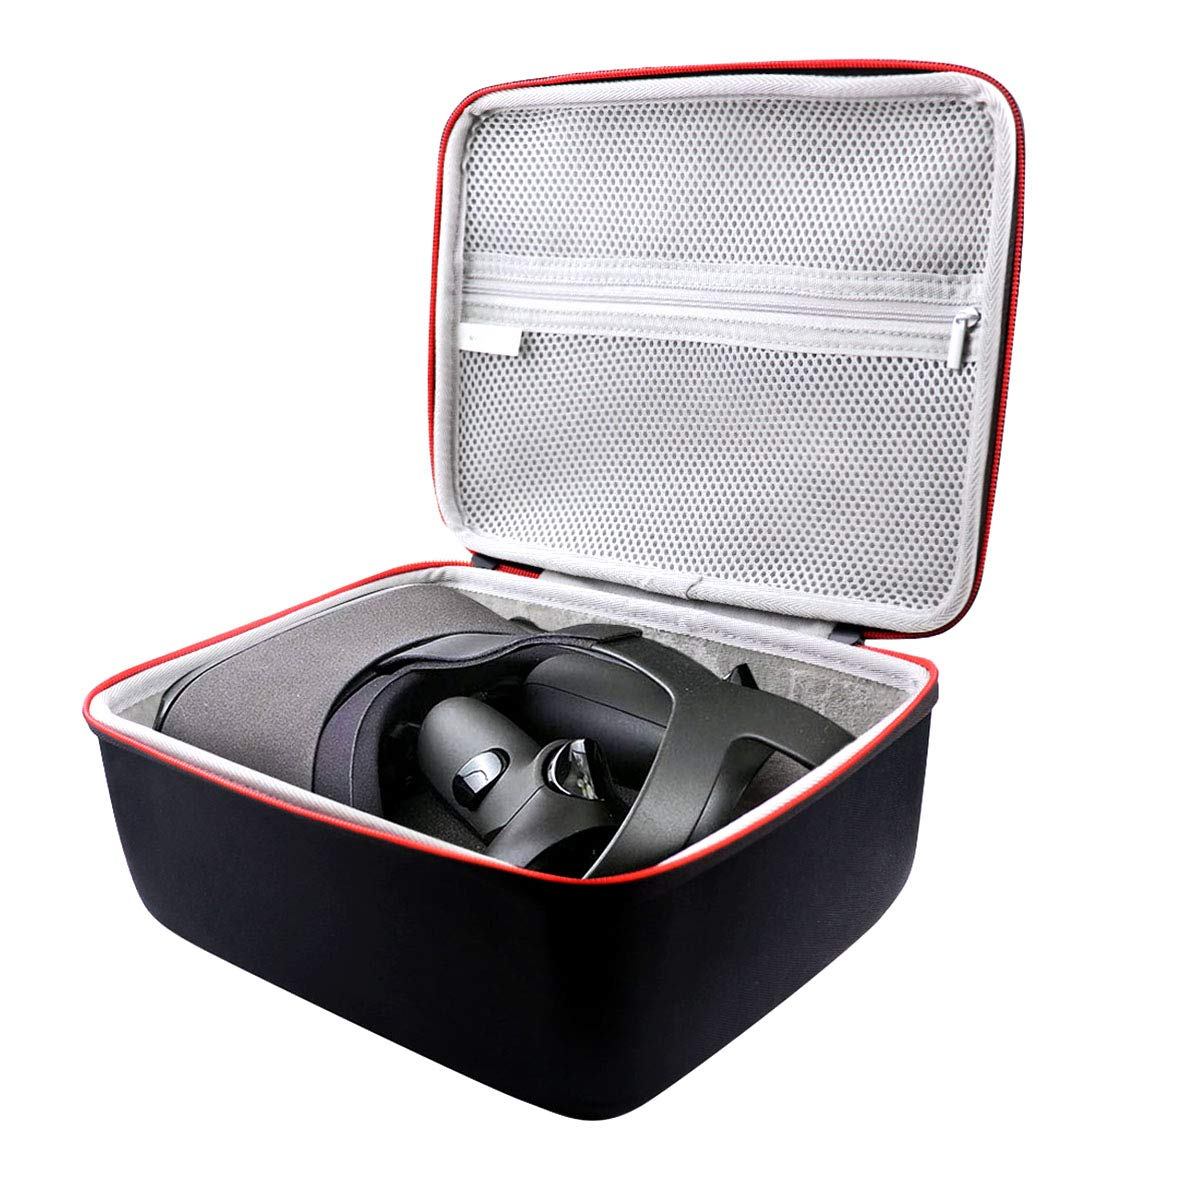 Asafez Travel Carrying Case Fits for Oculus Quest VR Gaming Headset and Accessories